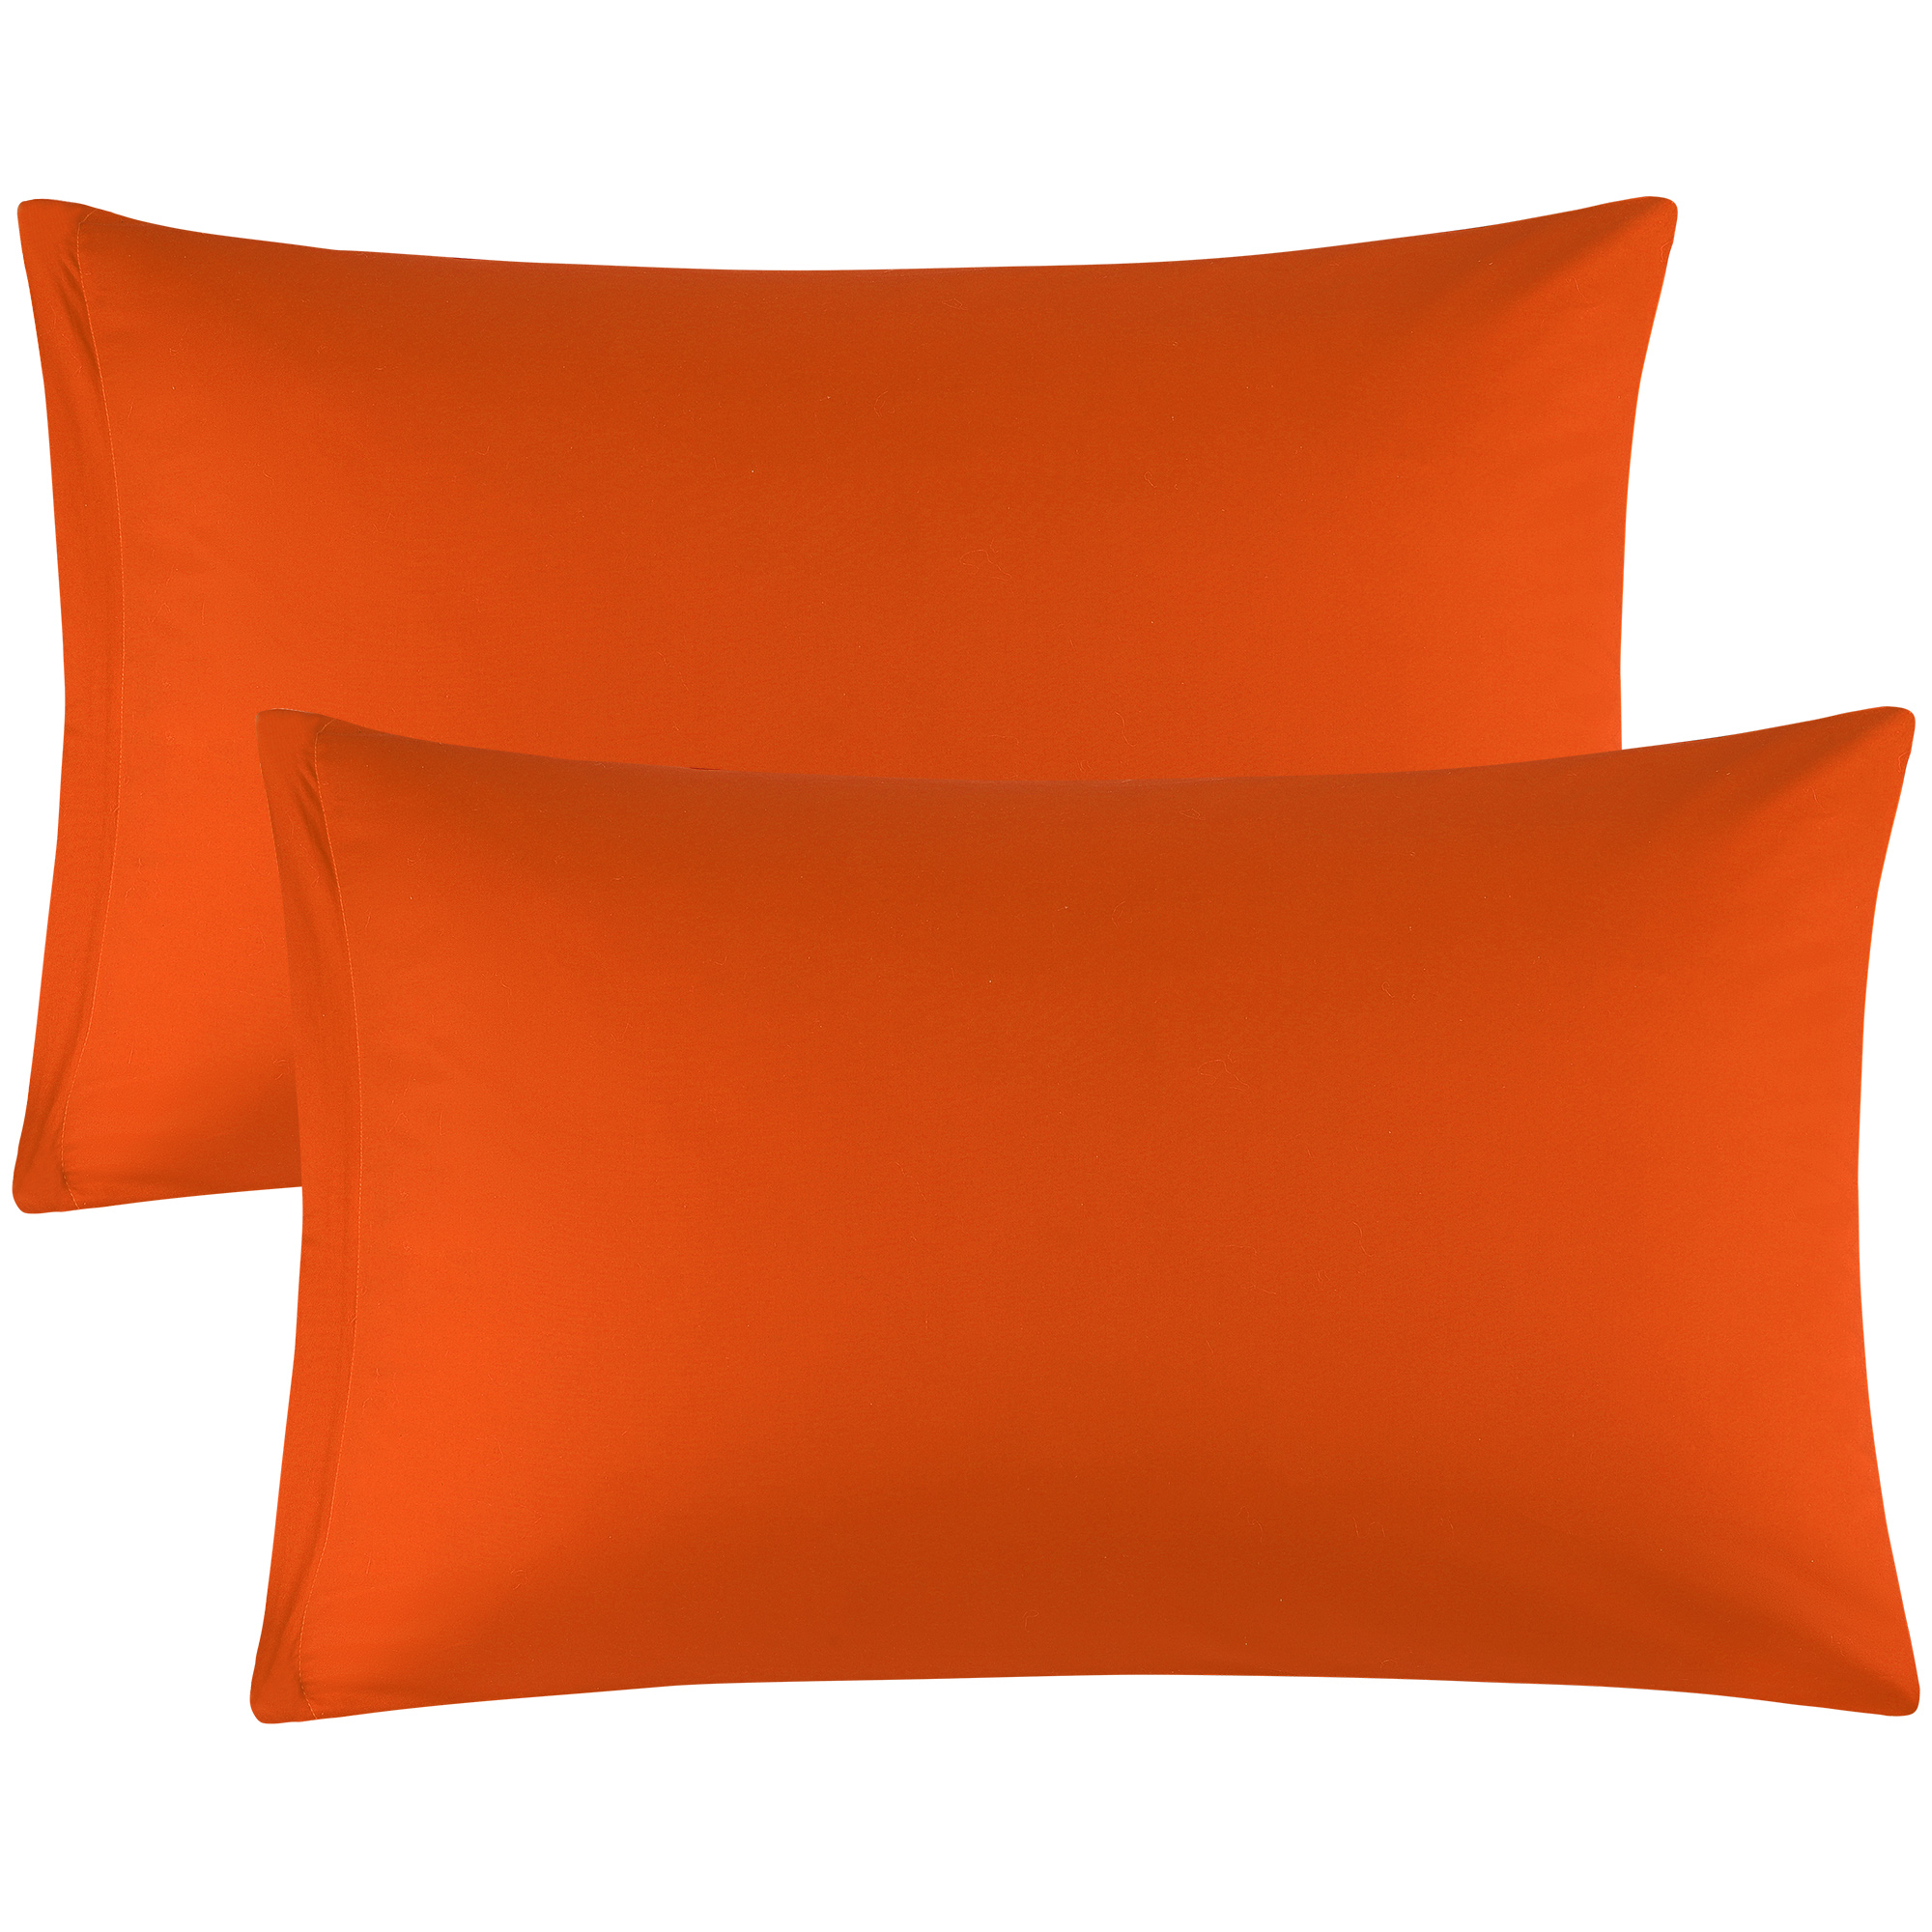 Zippered Cases Pillowcases Covers Egyptian Cotton 2-Pack (20 x 26 Inch, Orange)